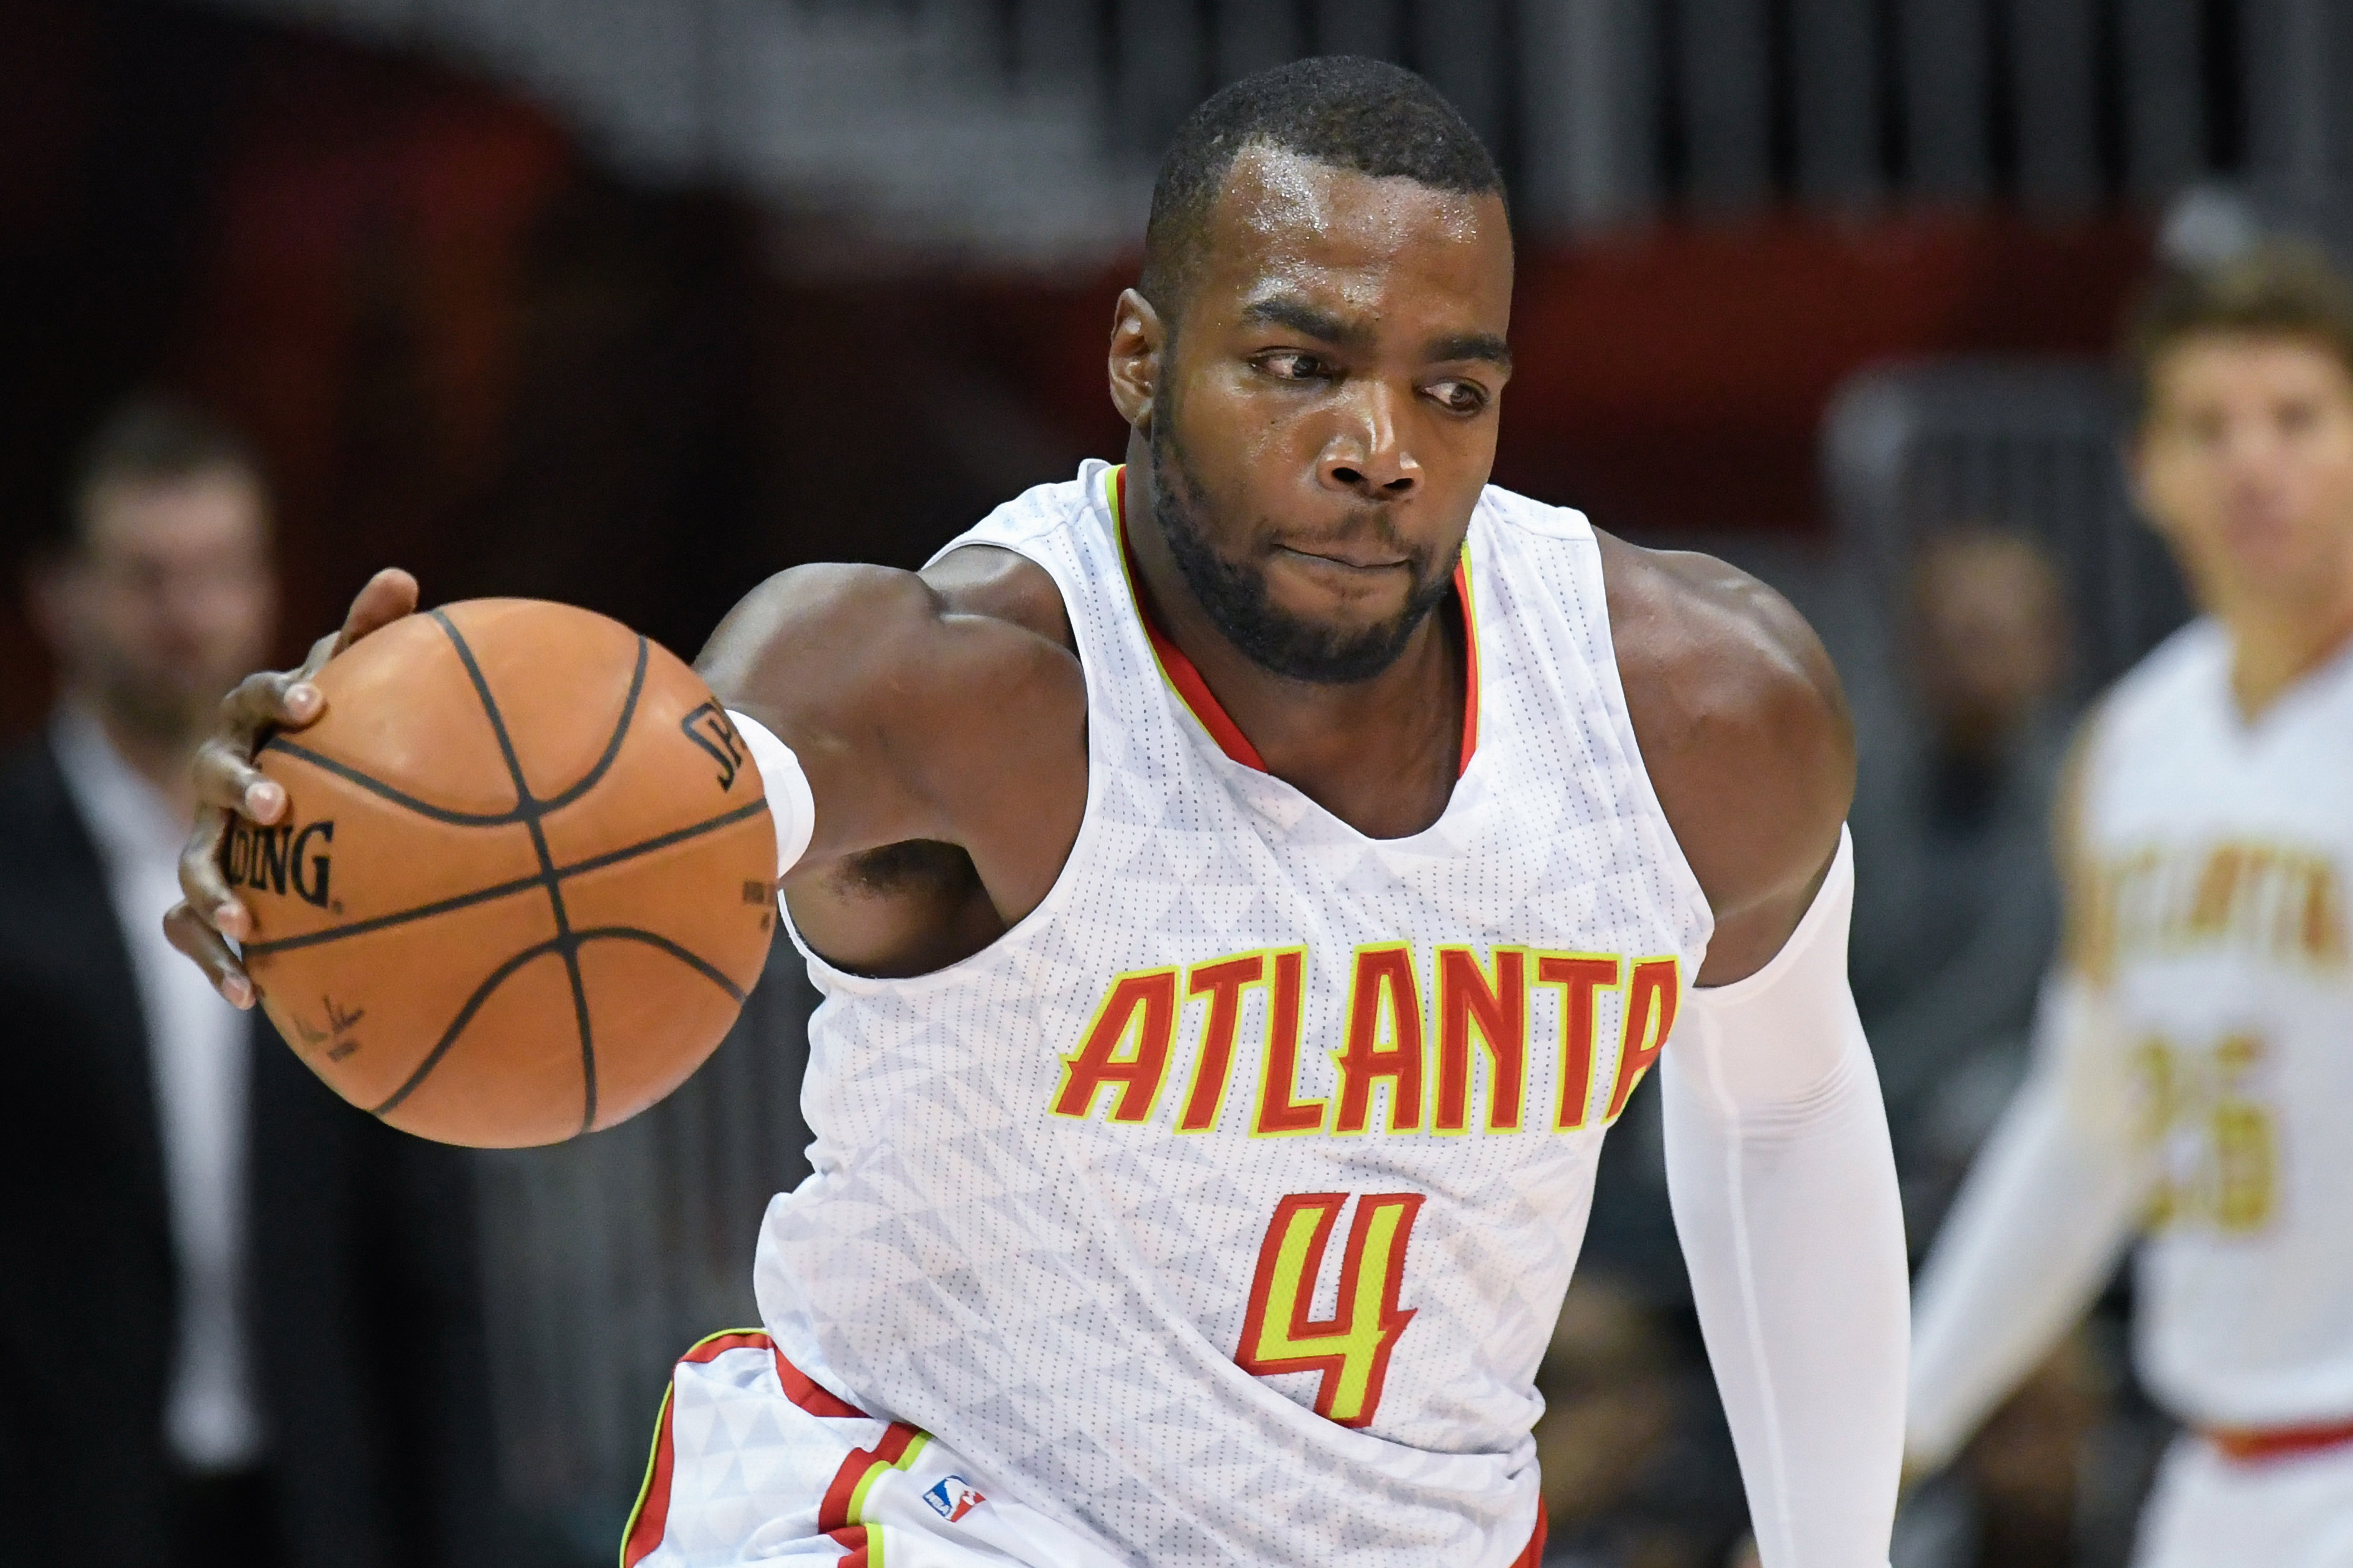 GT Brooklyn Grit ATL Hawks Wednesday 03 08 17 7 30PM RealGM